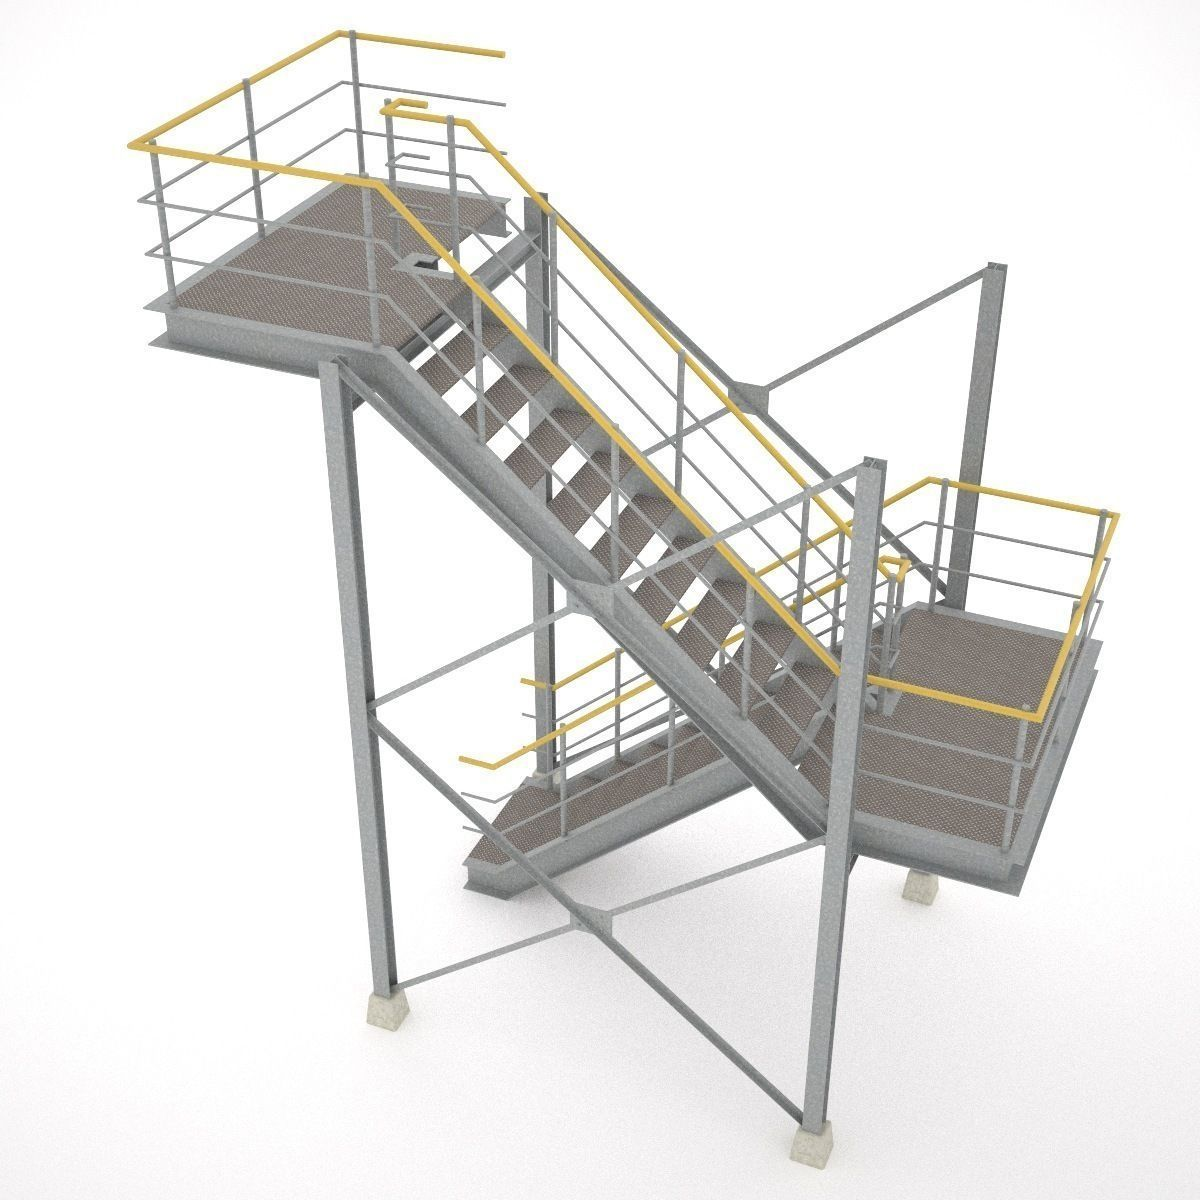 Kitchen Designers Jobs Industrial Stairs 01 3d Model Obj 3ds Fbx Hrc Xsi